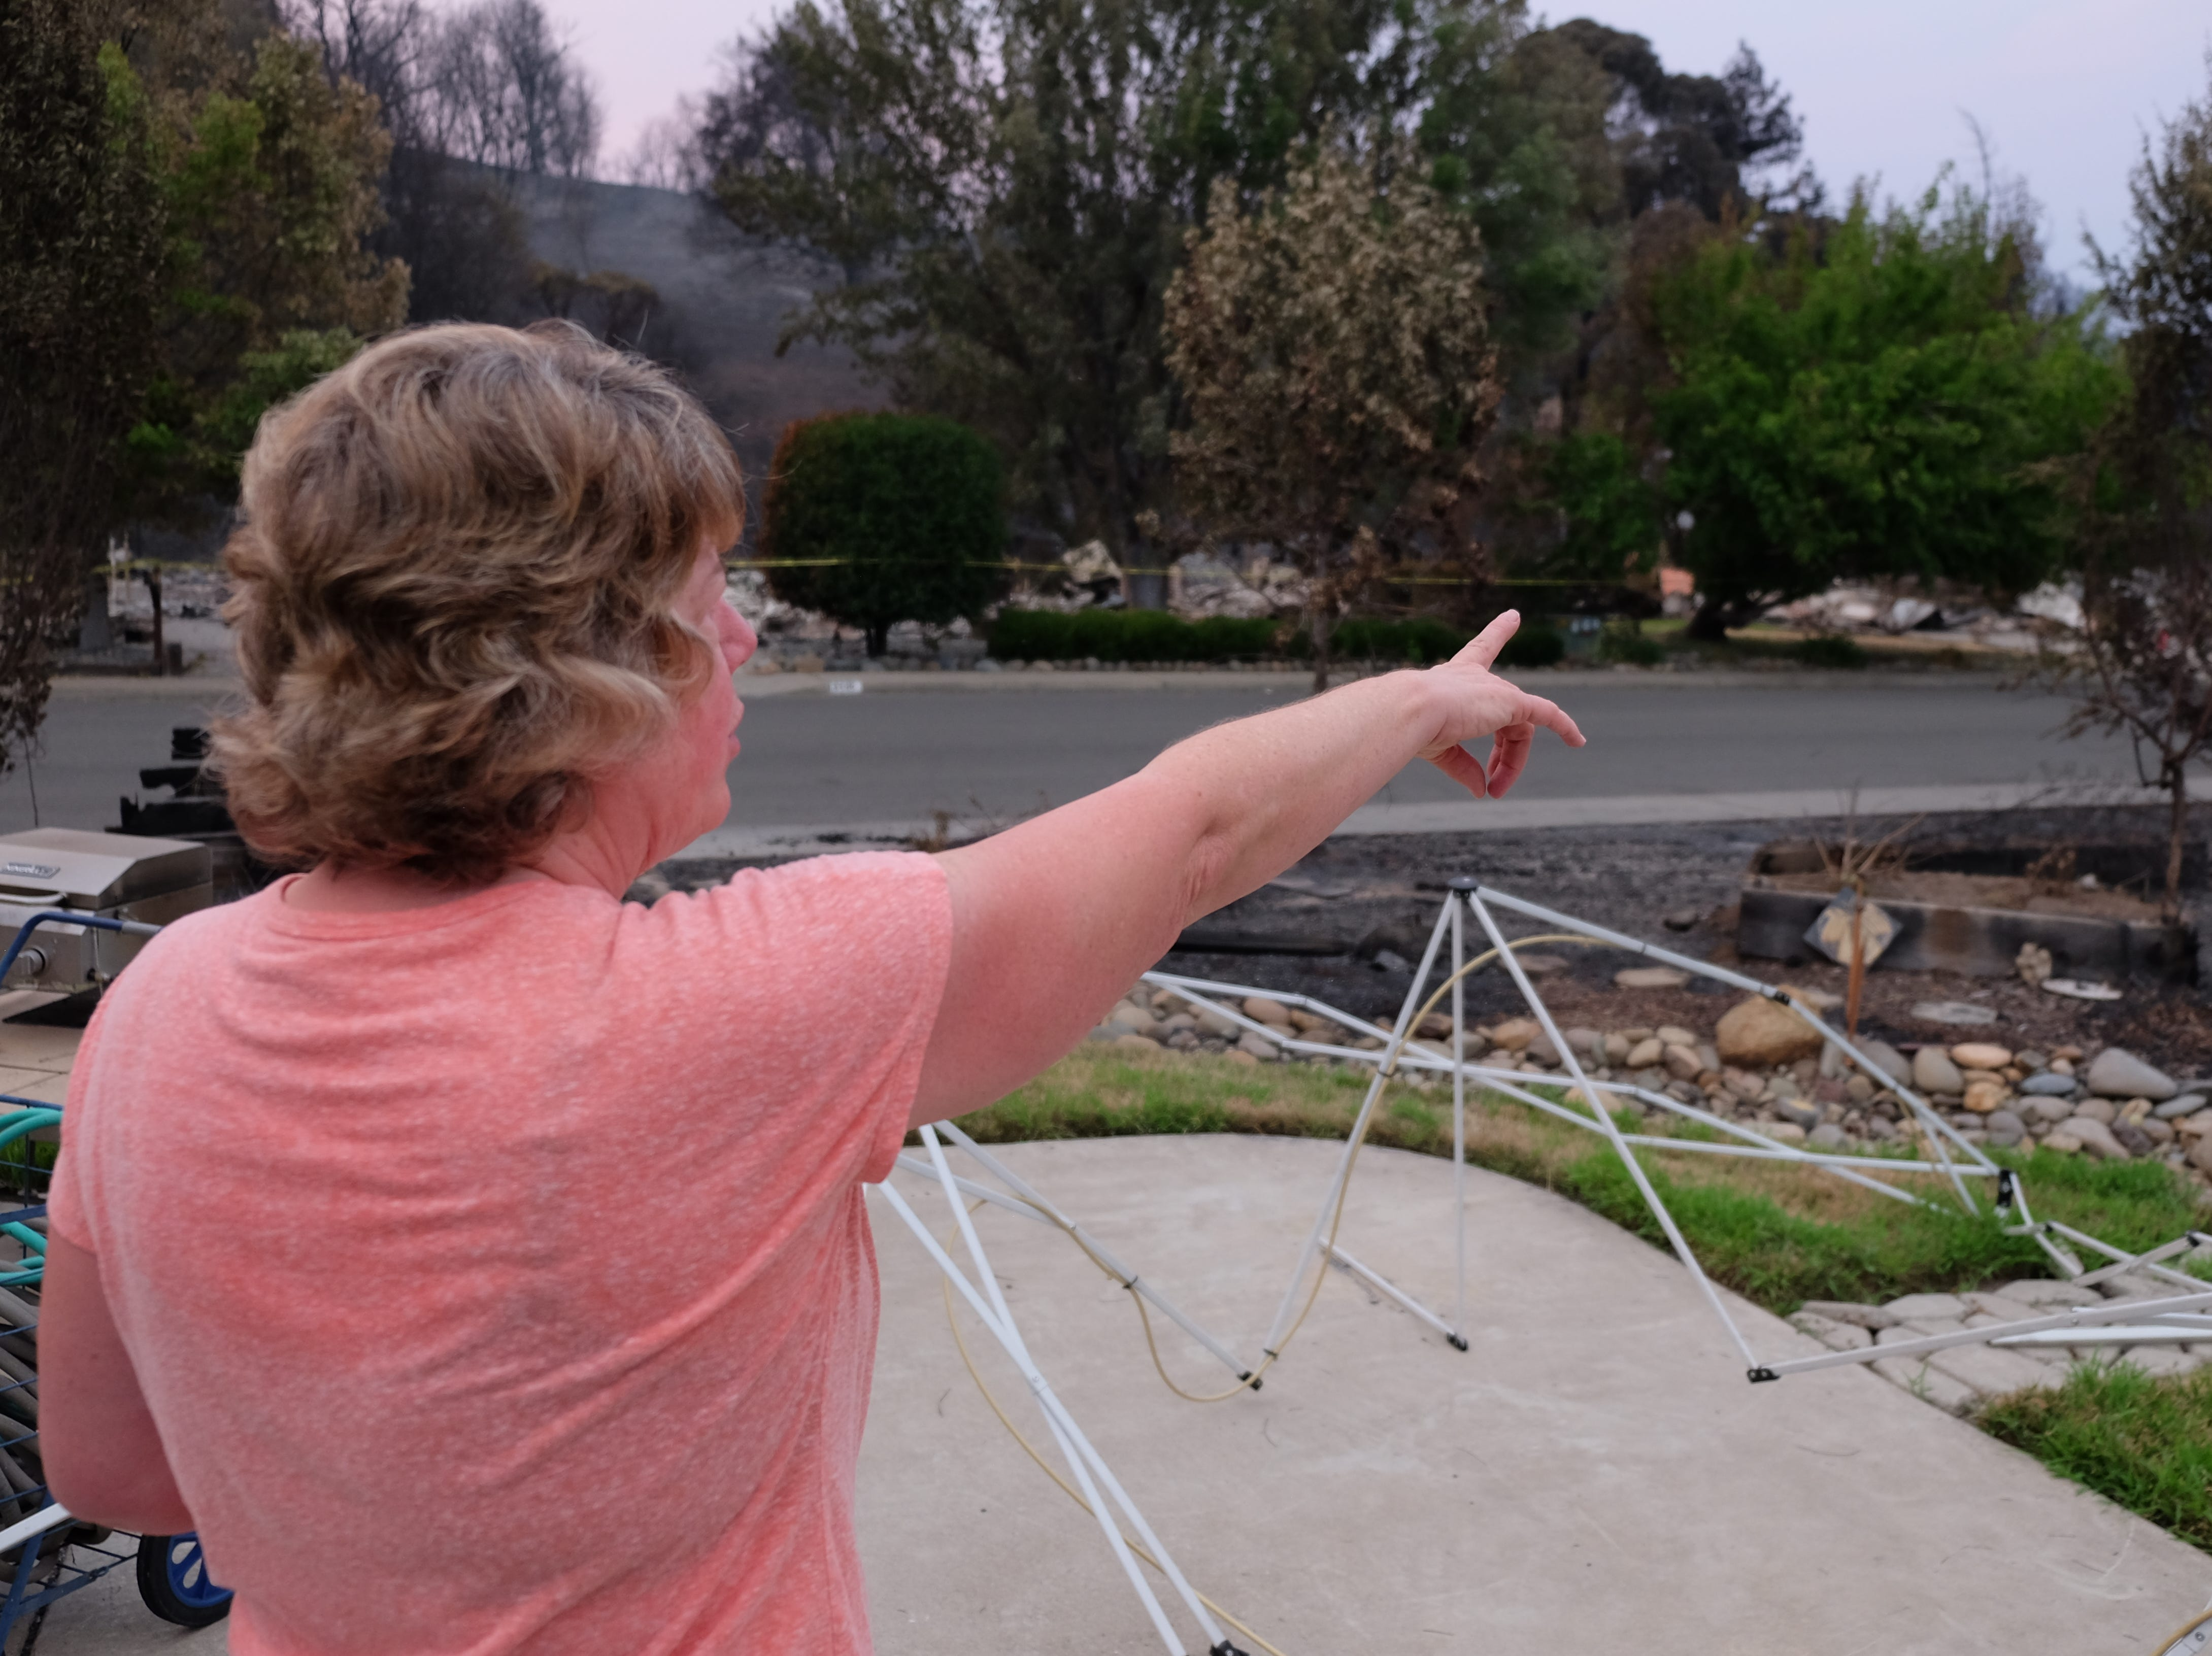 Alisa Robinson points at neighboring homes burned to the ground while describing the neighborhood which saw many residents displaced by the Carr Fire in Redding, California.